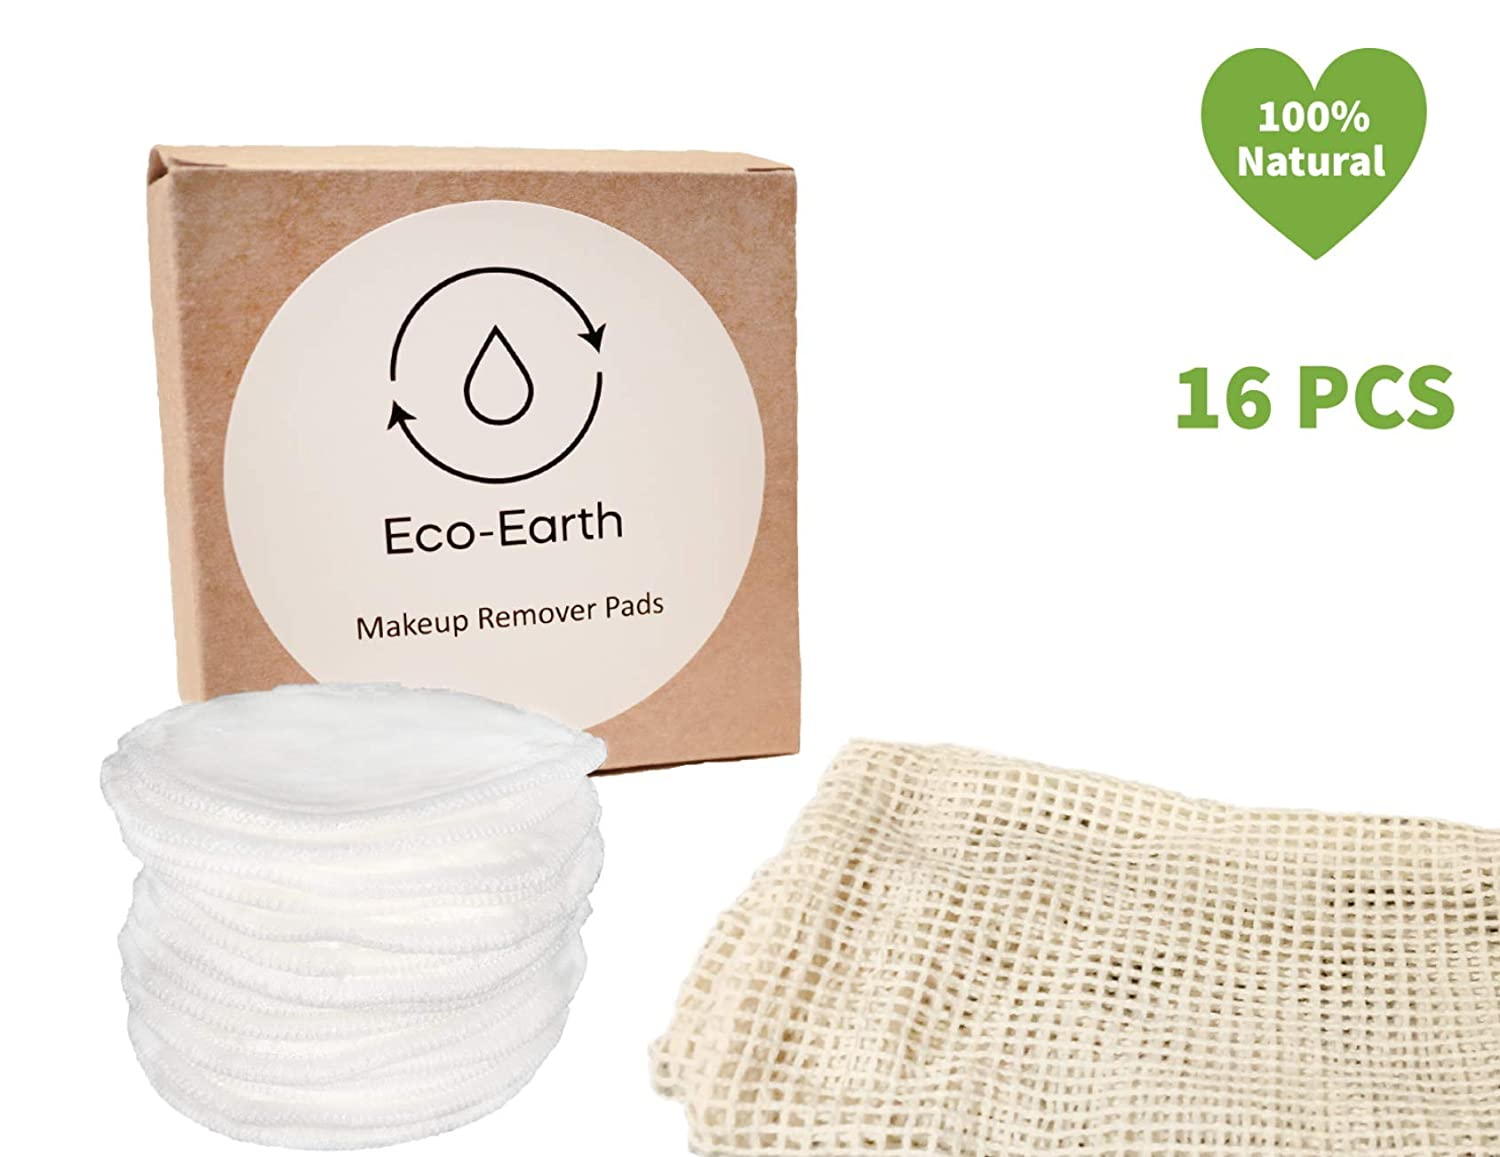 Eco-Earth Bamboo Makeup Remover Pads - Reusable Cotton Pads - Organic Cotton Pads - Reusable Face Pads - Cotton Rounds for Face - 16 Pack with Cotton Laundry Bag